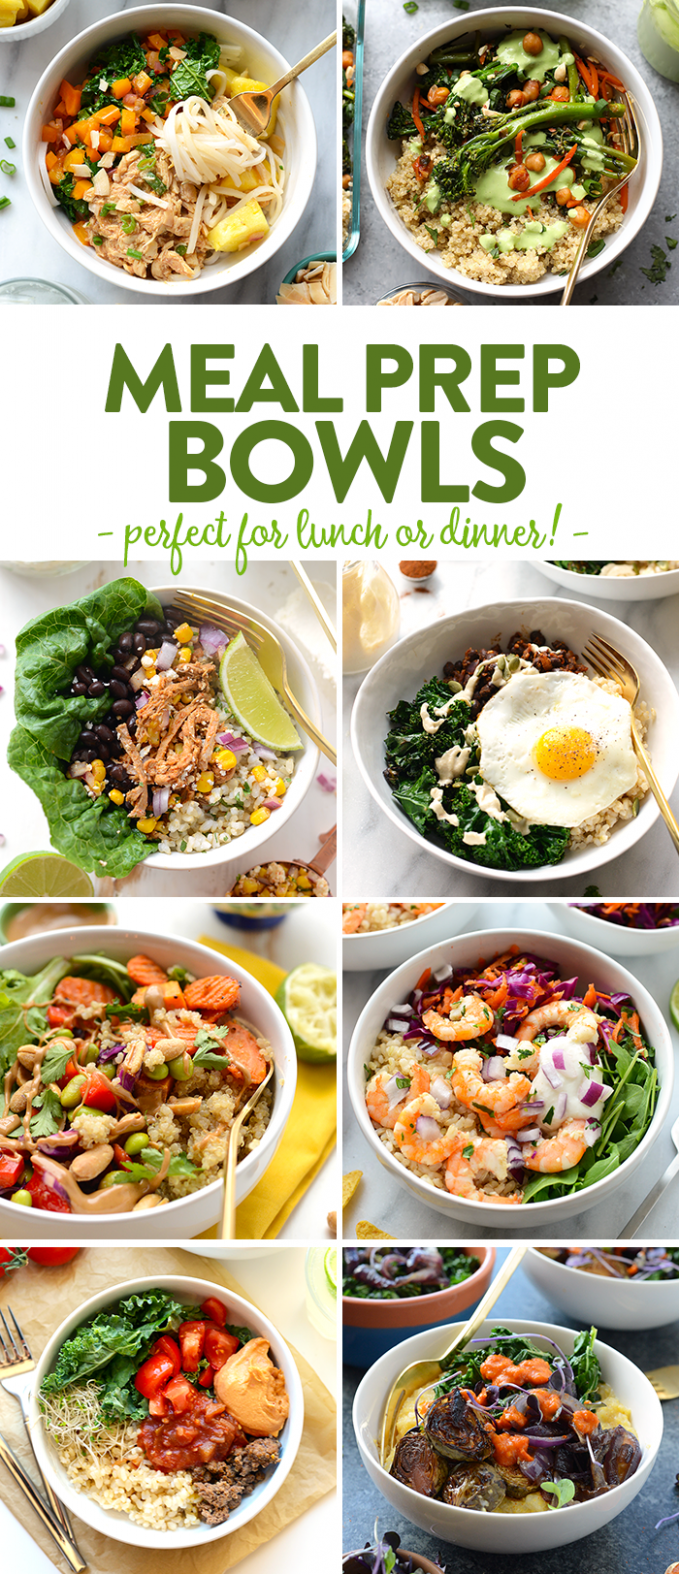 The Best Meal Prep Bowl Recipes Around Town! | Fit Foodie Finds - Recipes Dinner Bowls